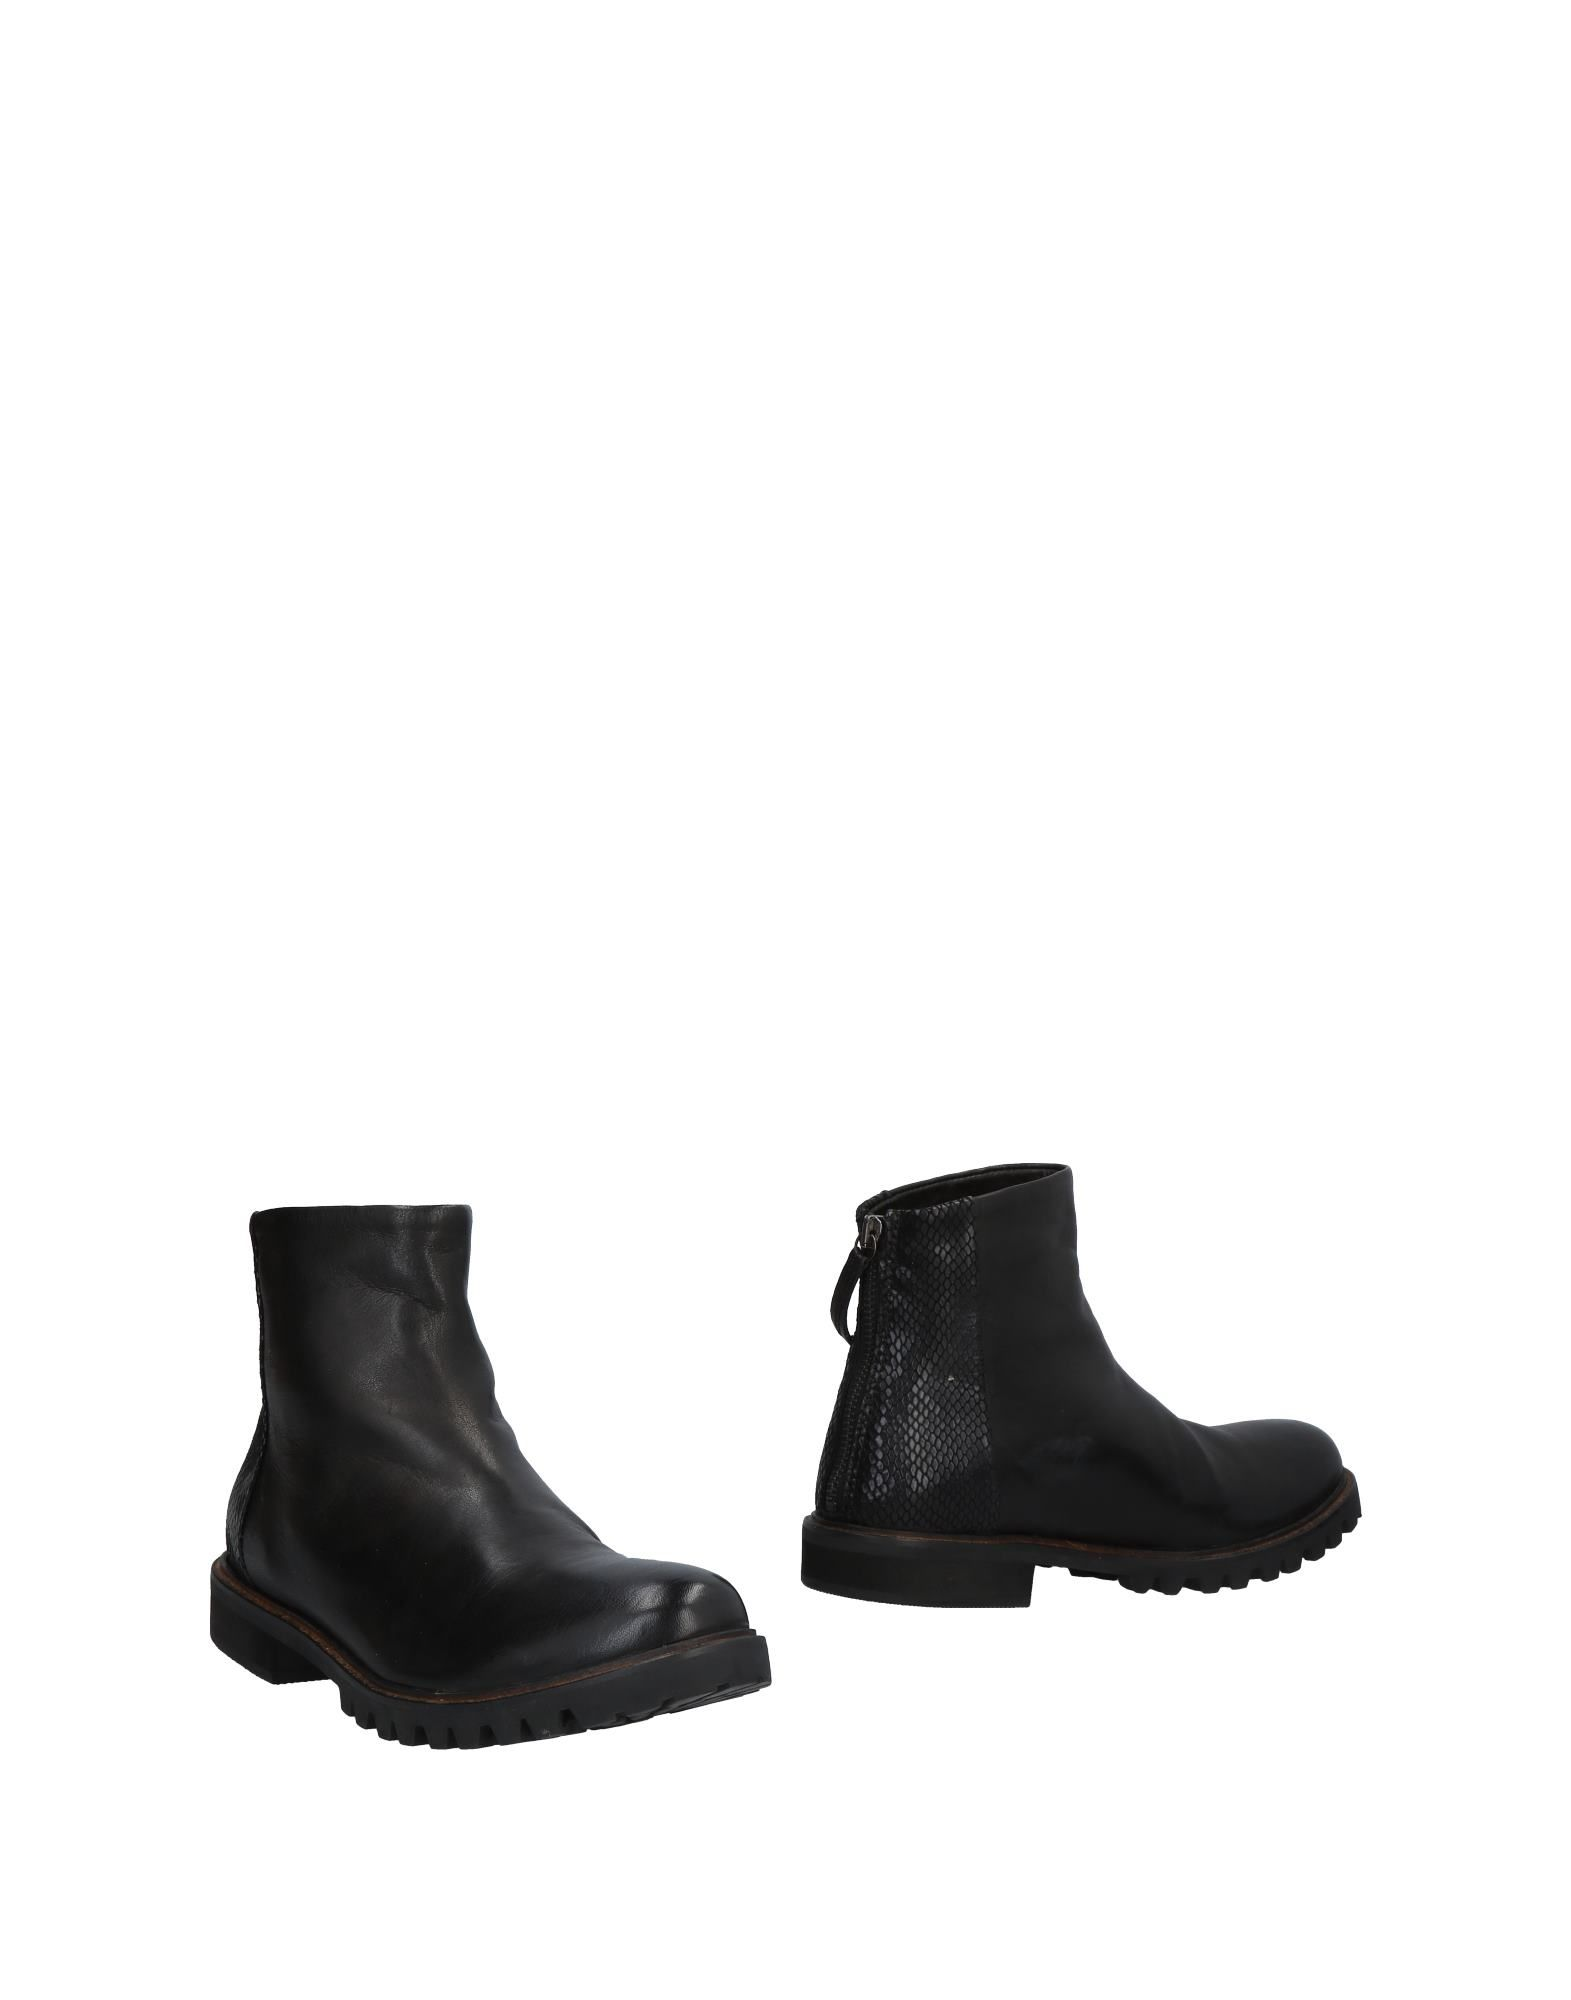 Studio By Volpato Ankle Boot - Women Boots Studio By Volpato Ankle Boots Women online on  United Kingdom - 11486932GE b18b91